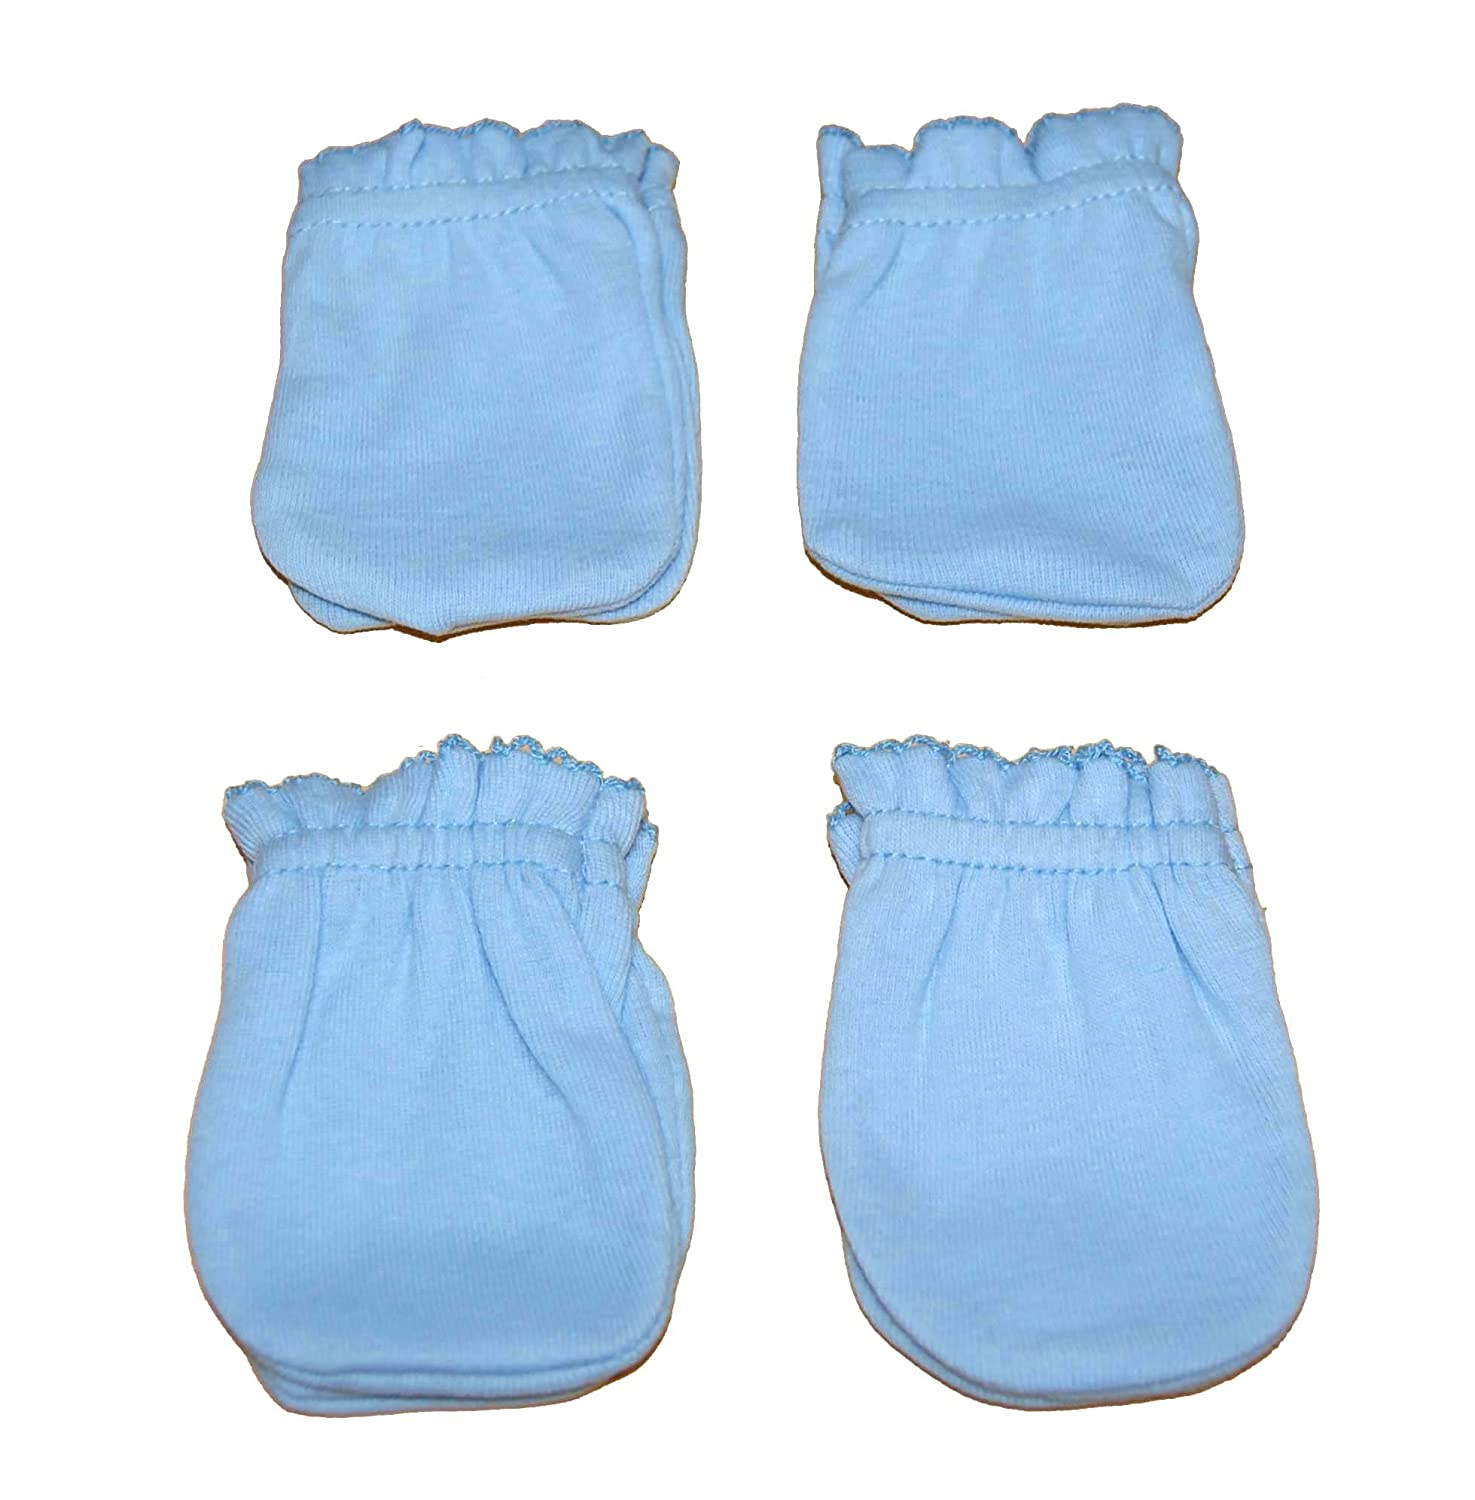 4 Pairs Cotton Newborn Baby/infant Boy No Scratch Mittens Gloves - Light Blue Tamsmart